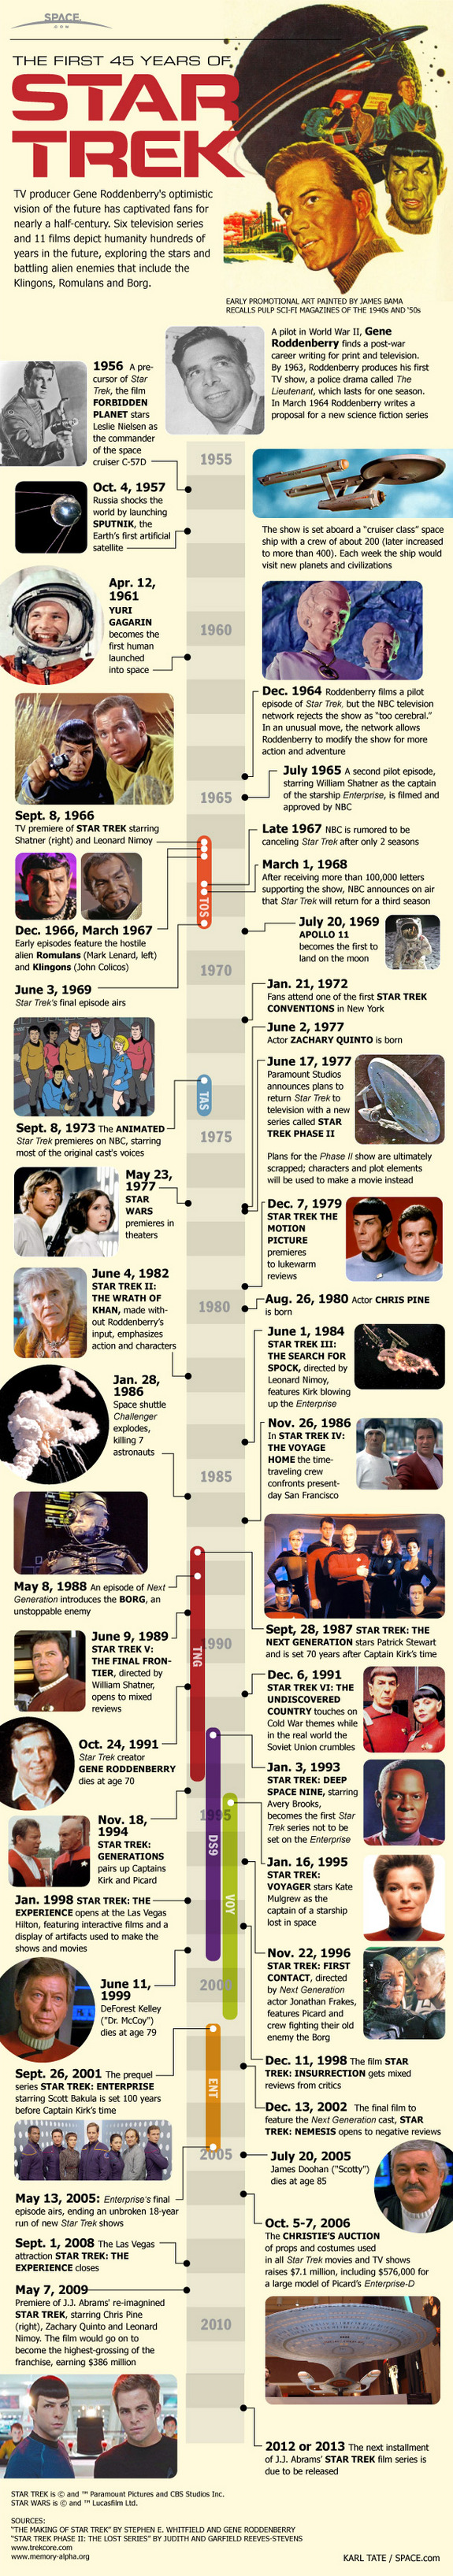 Star Trek Infographic Celebrates 45 Years of Space Exploration